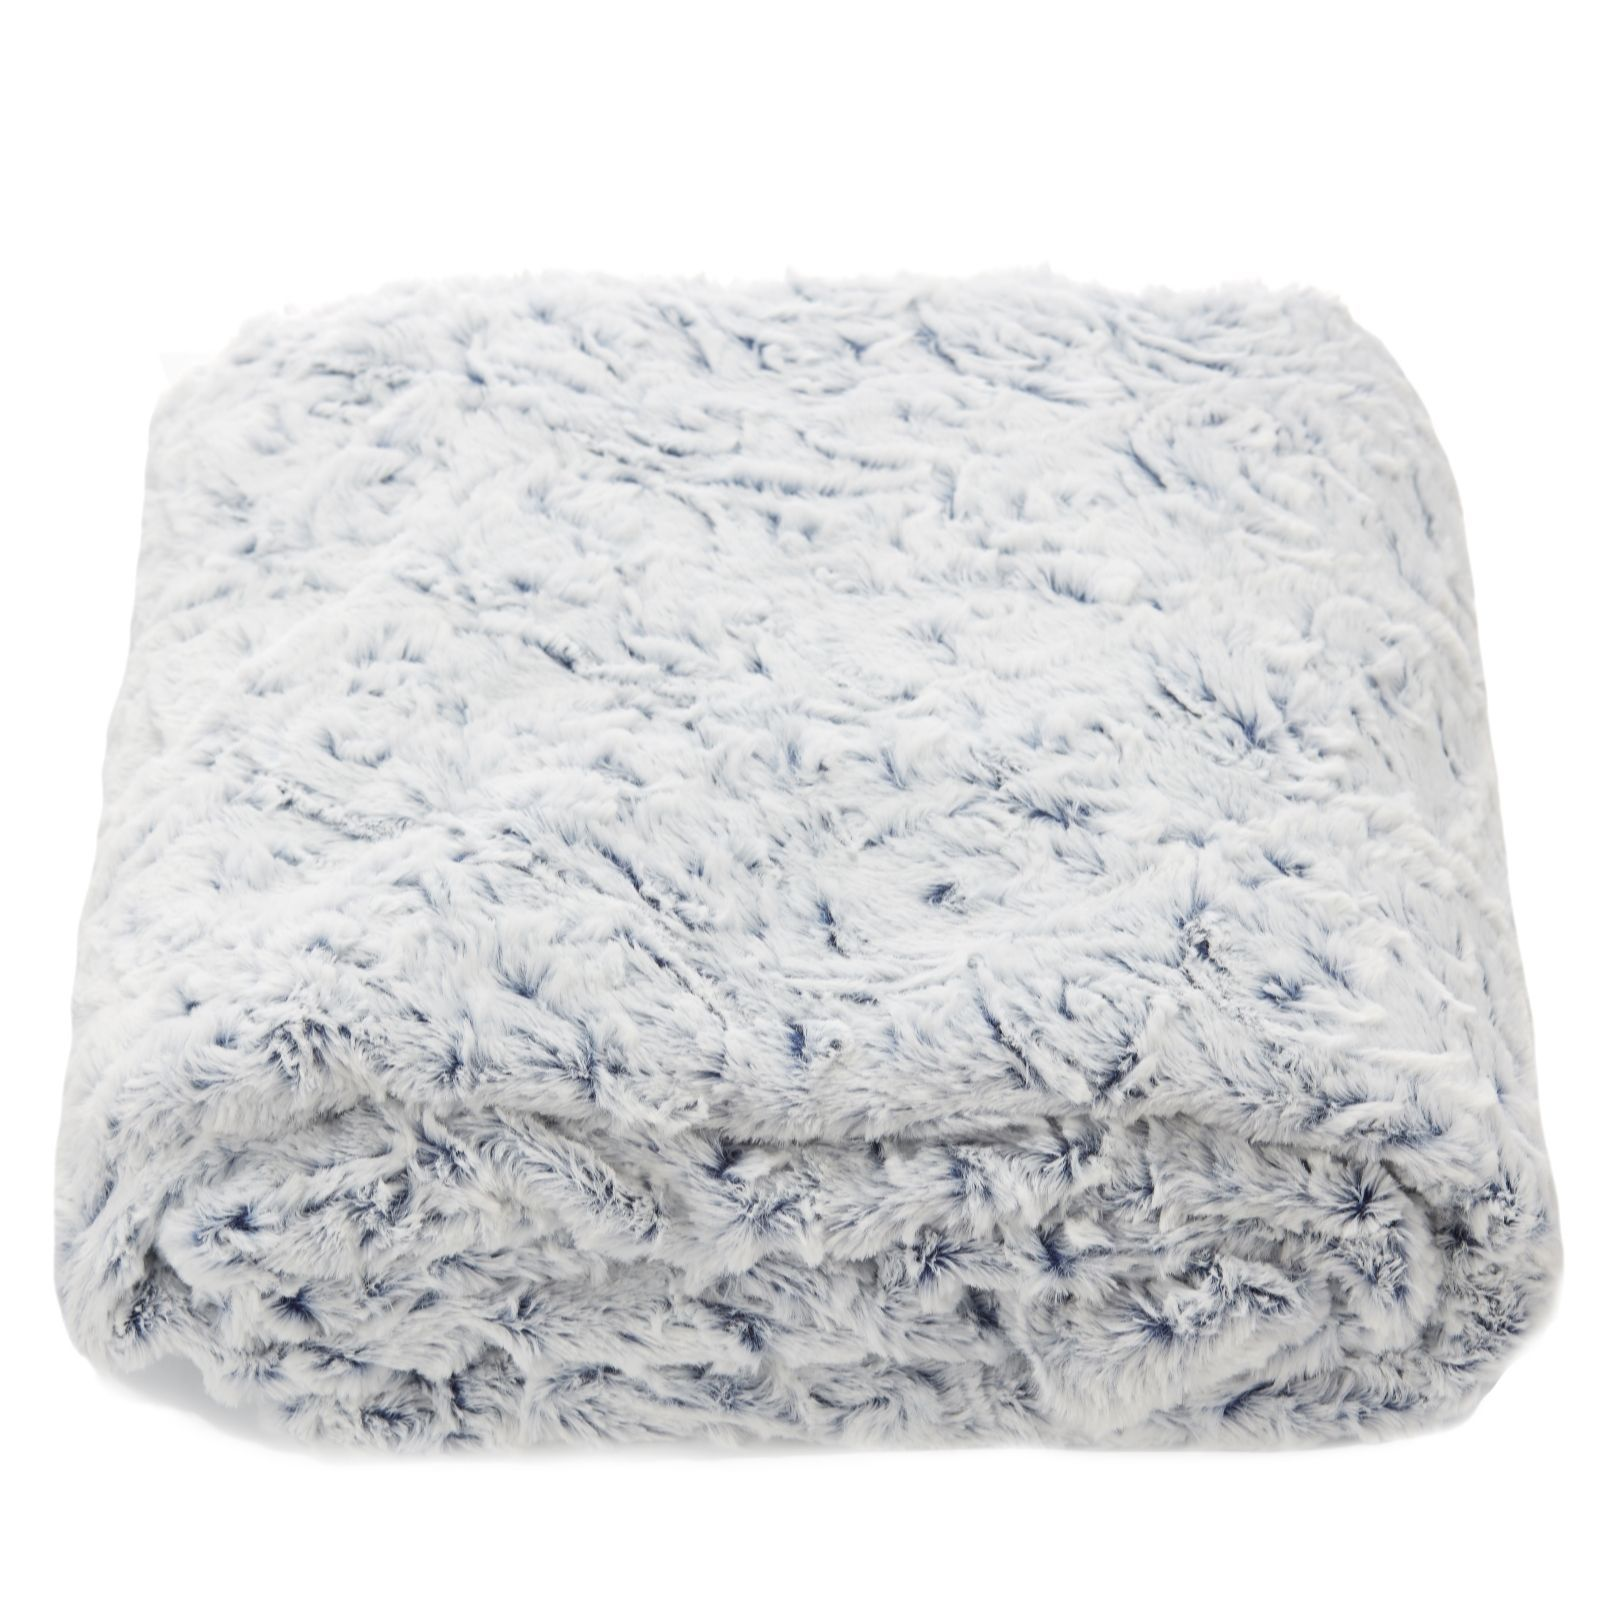 """804430 Mayfair Manor Brocade Scroll Embossed Fleece Throw QVC Price: £24.00 Last Clicks Price : £21.60 +  P&P: £4.95 Select colour NAVY In a cosy, super-soft faux mink, this cosy throw features an embossed pattern on one side and is plain faux mink on the other side. Nestle down in gorgeous, luxurious warmth with this throw from Mayfair Manor.   100% polyester Machine washable at 30C Throw: 150cm x 200cm (60"""" x 80"""")"""